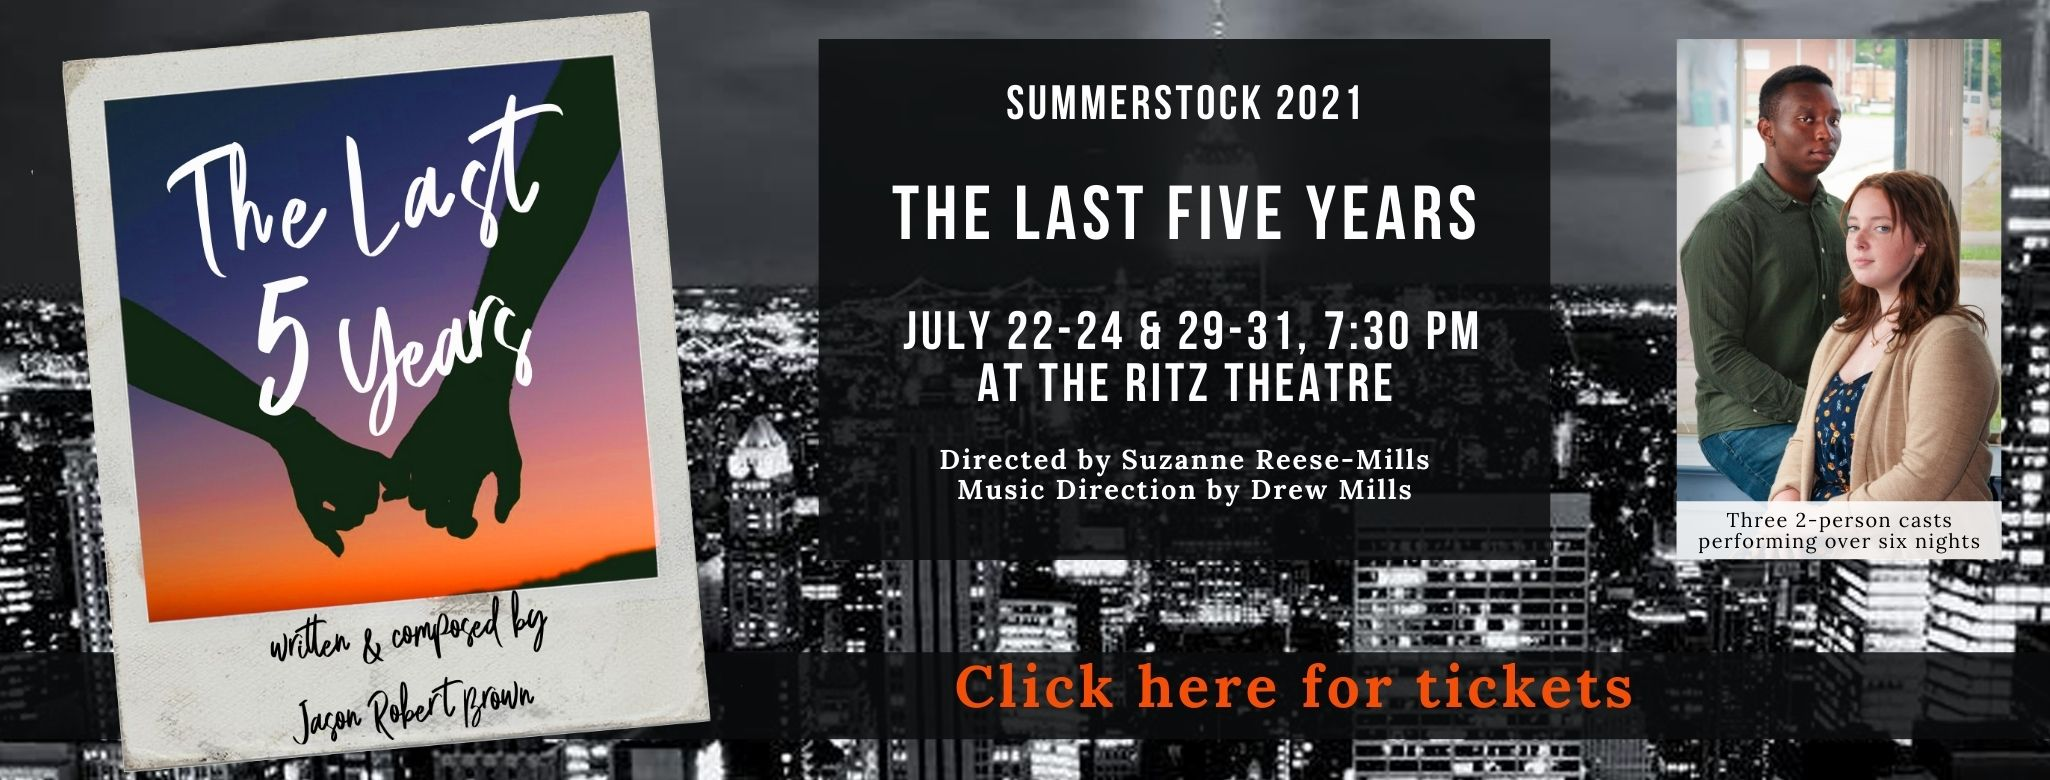 The Last Five Years play banner - Click for info and tickets